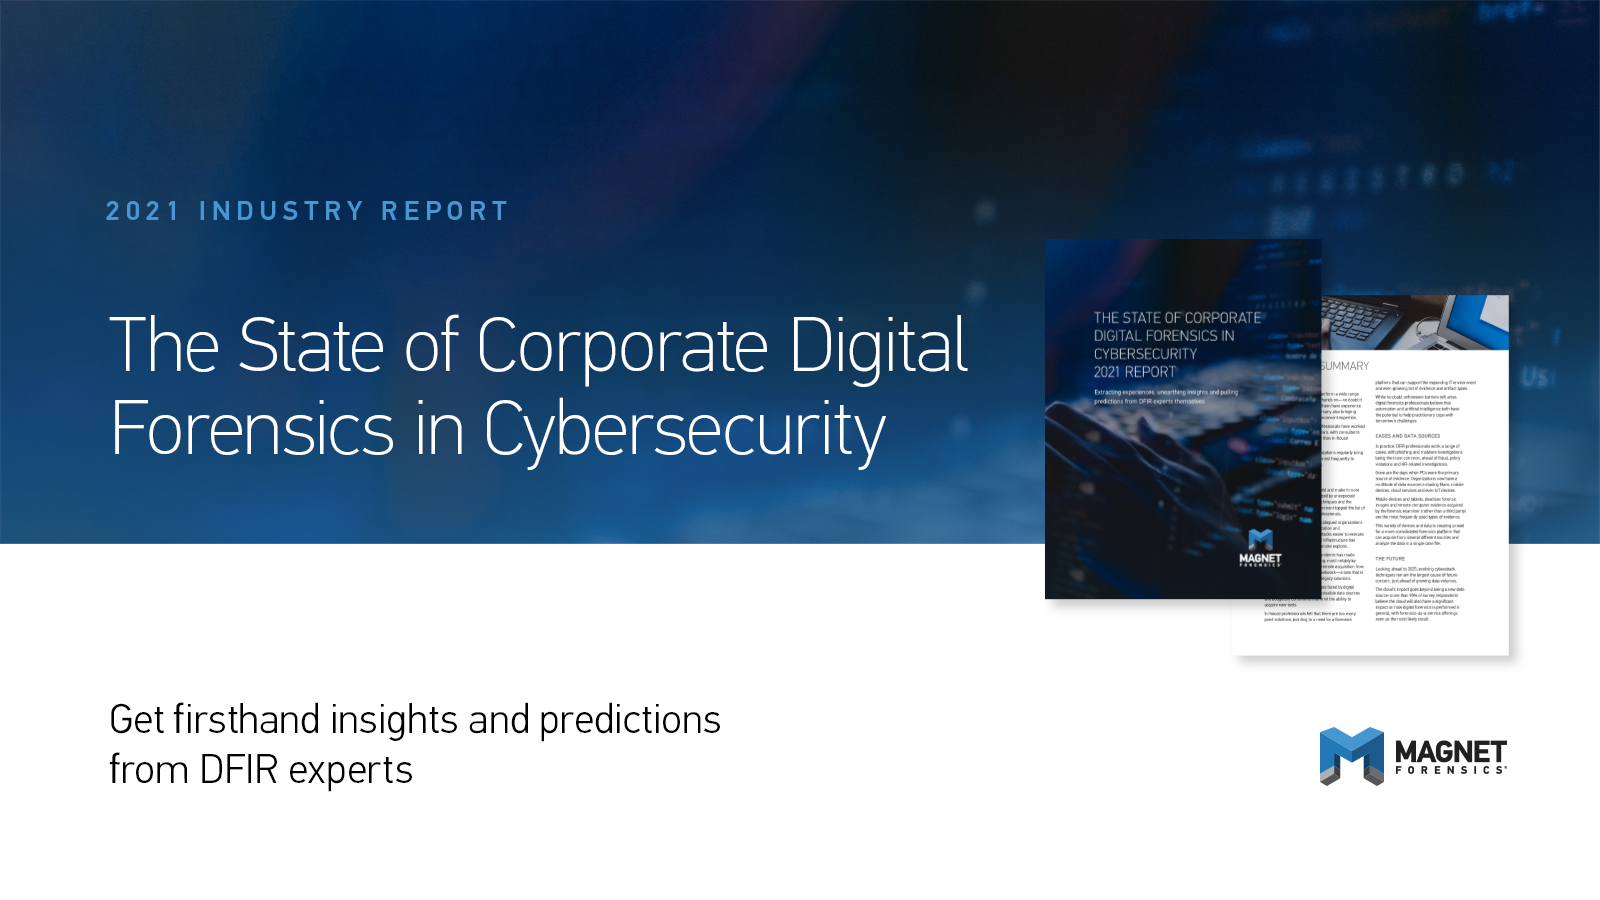 The State of Corporate Digital Forensics in Cybersecurity 2021 Report